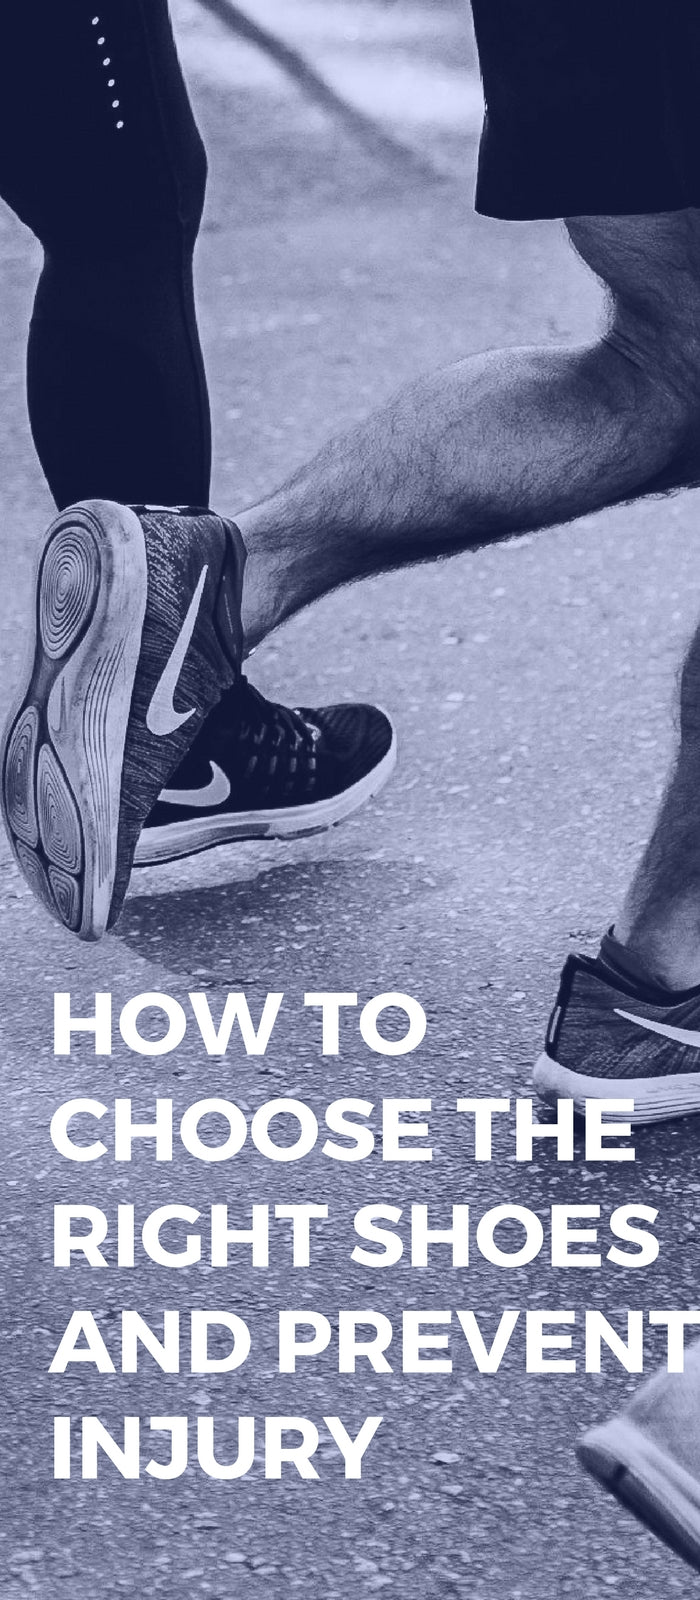 How to Choose the Right Shoes and Prevent Injury